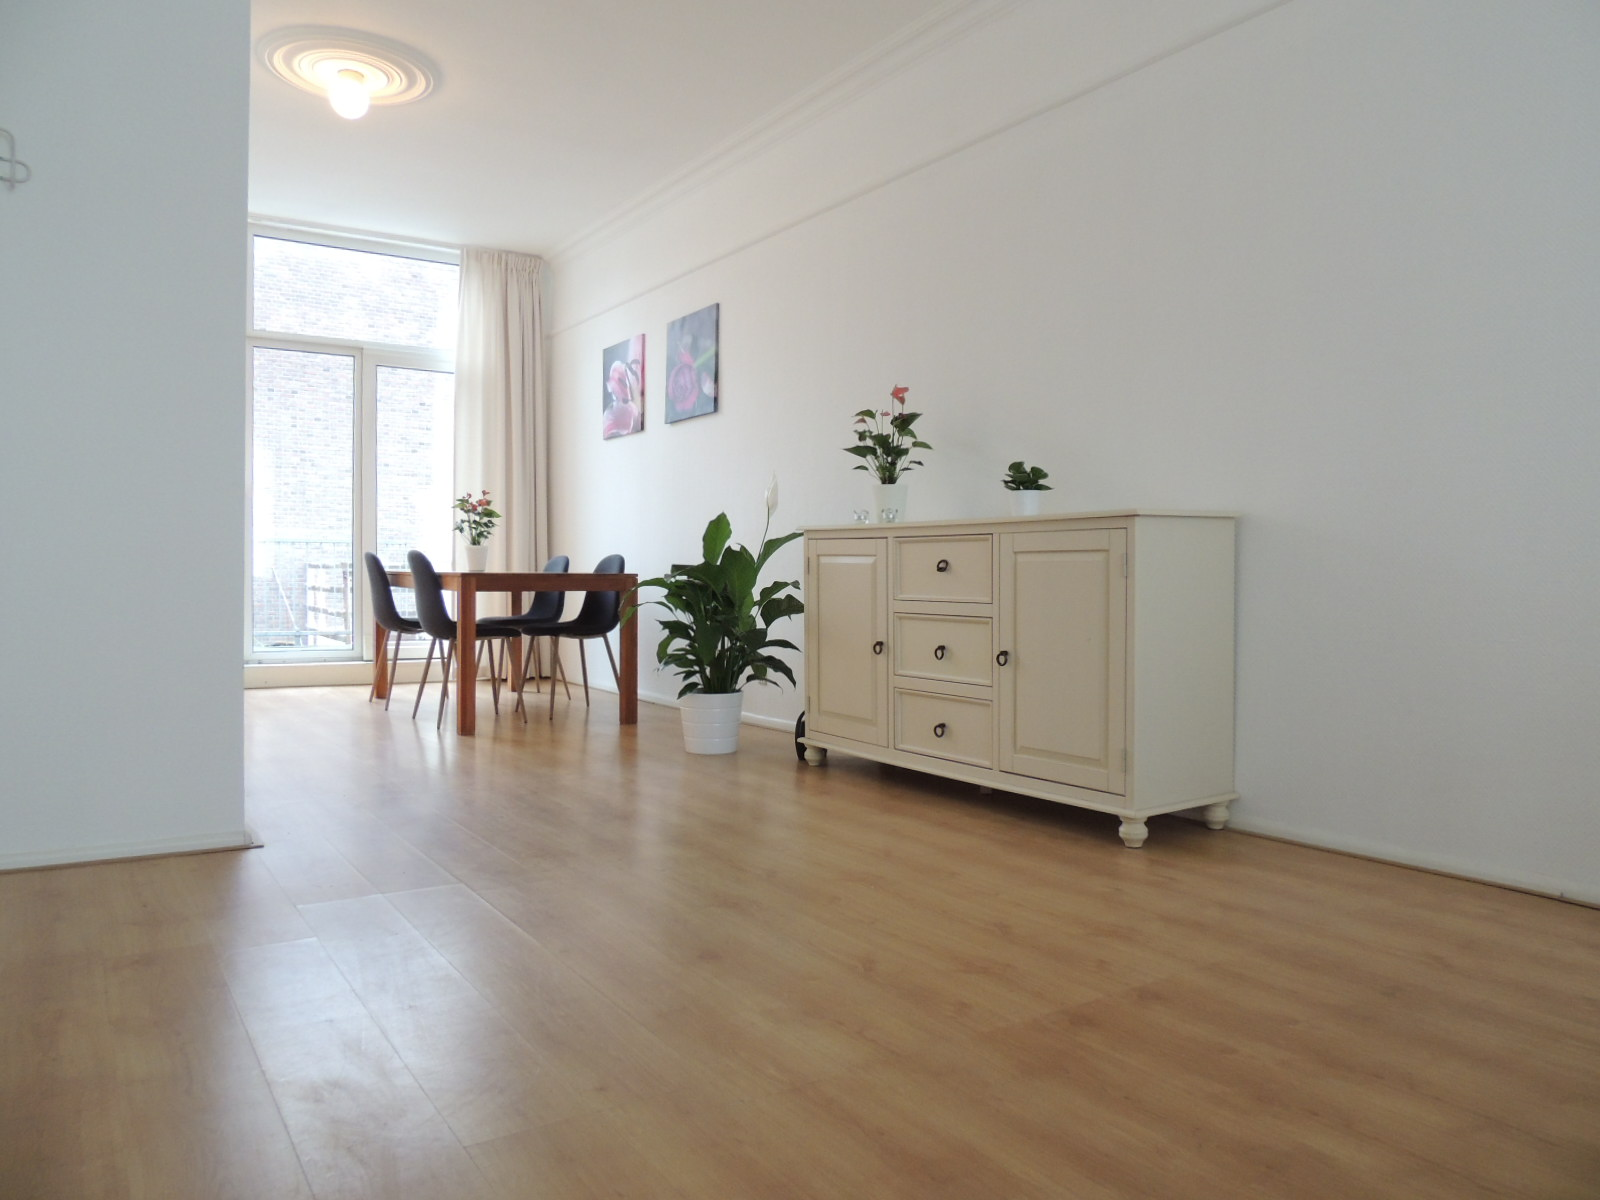 Beeklaan renovated and furnished 1Br apartment with terrace